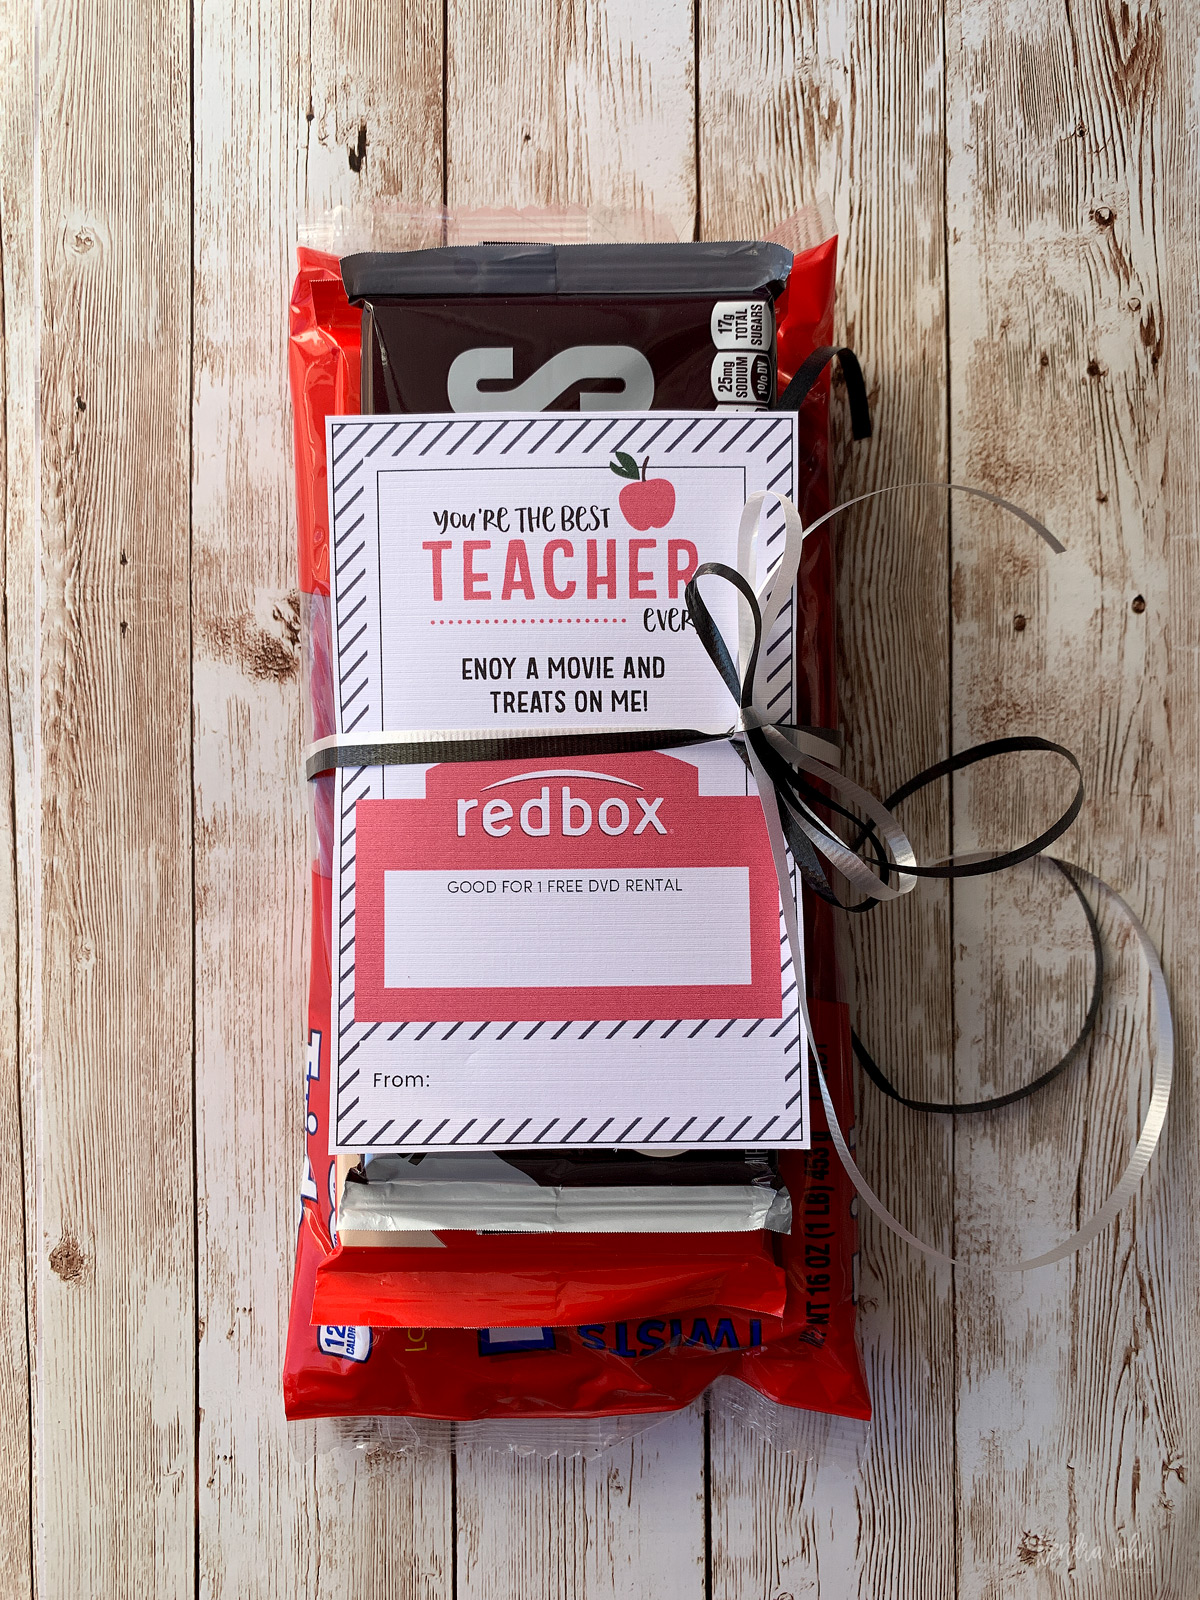 image relating to Redbox Teacher Appreciation Printable named 20+ Redbox Present Tag Printables Pics and Designs upon Weric